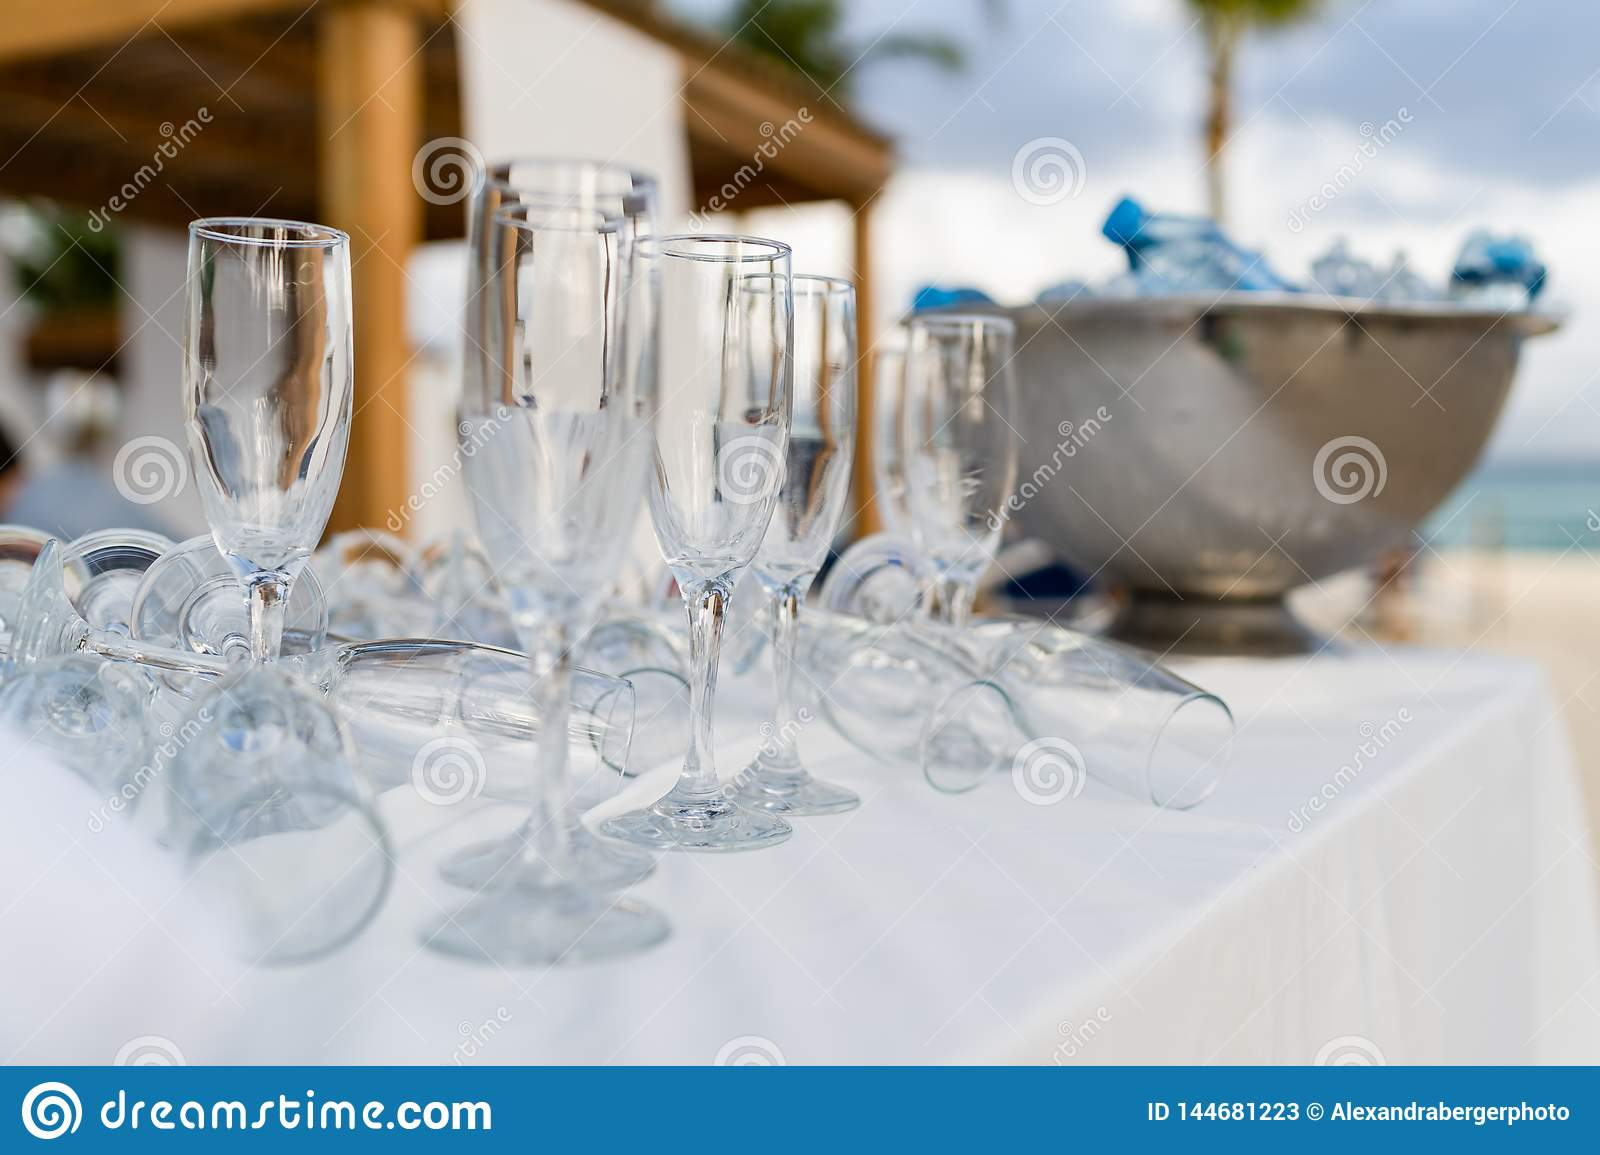 Empty glasses before reception with cooler in the background